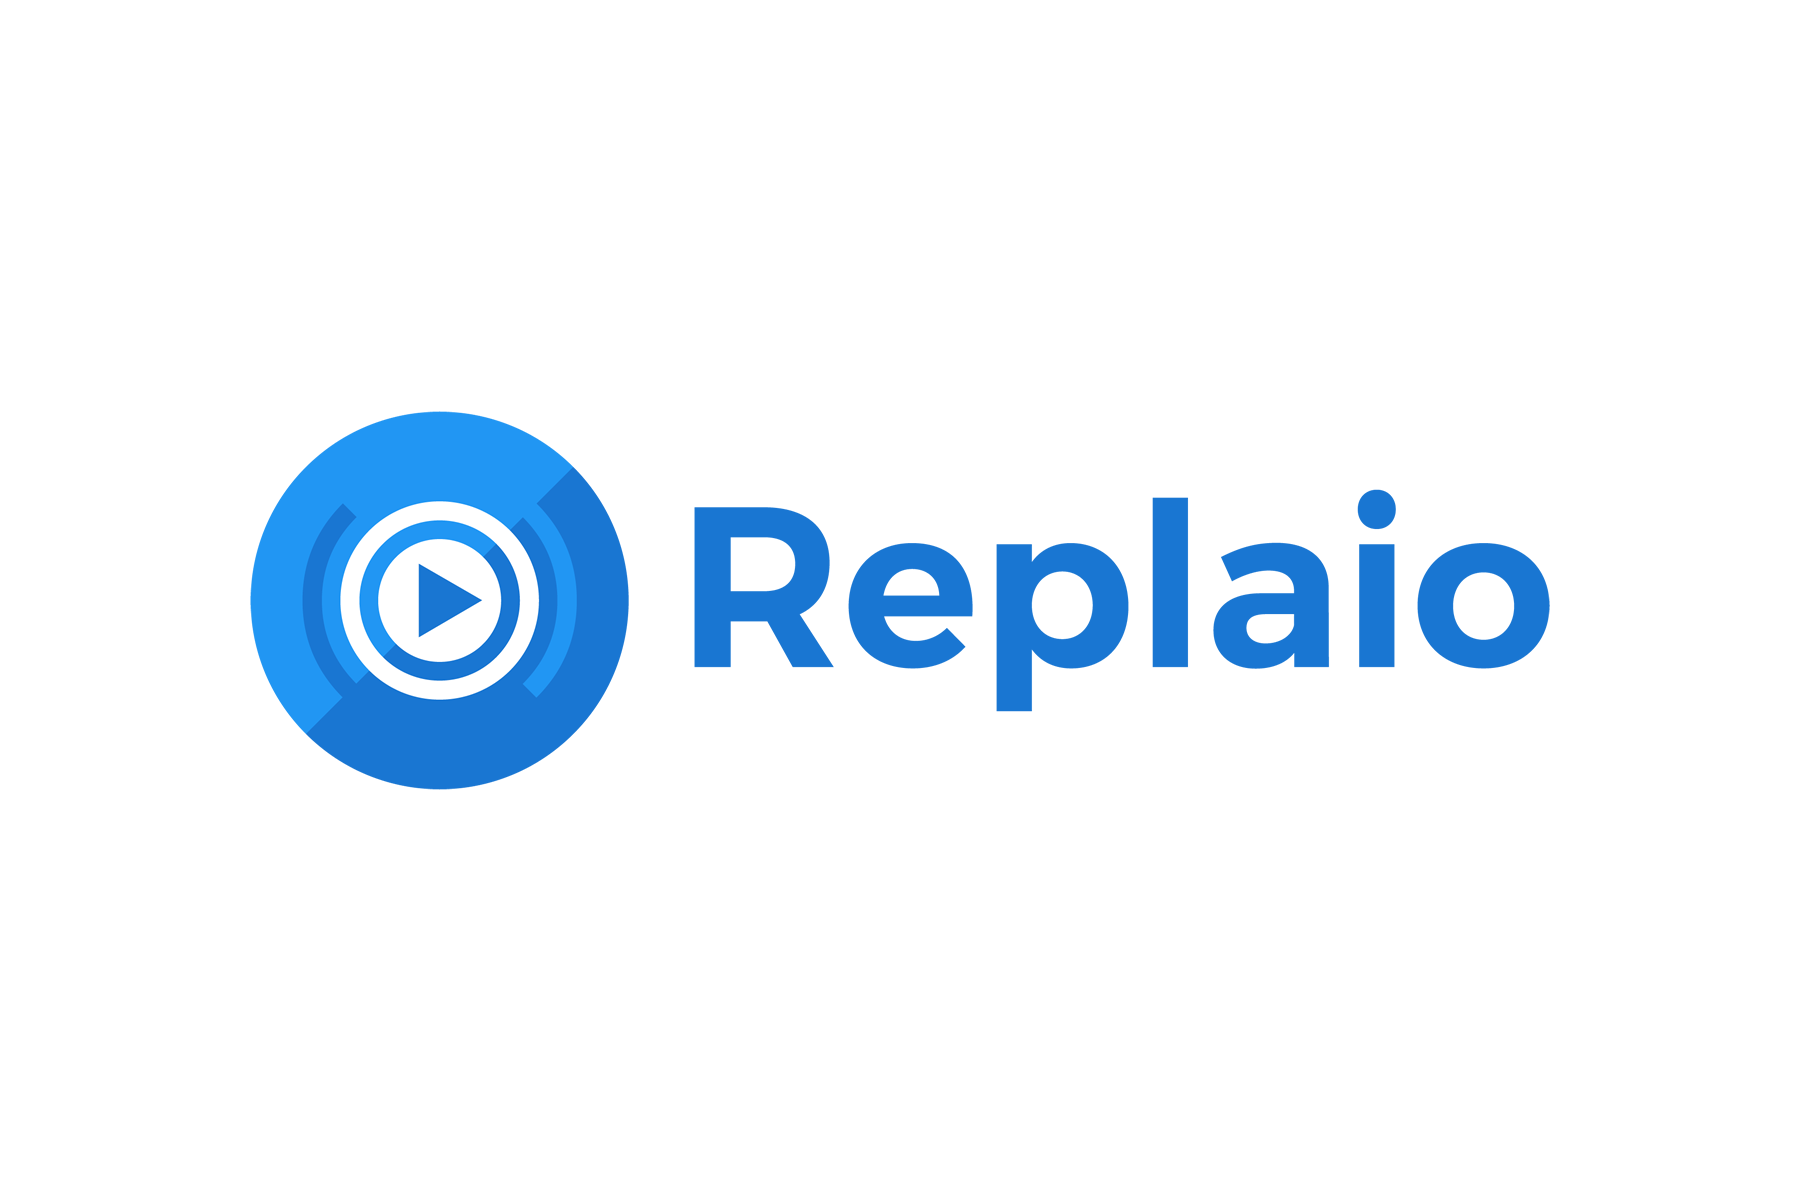 replaio logo 01 bg white